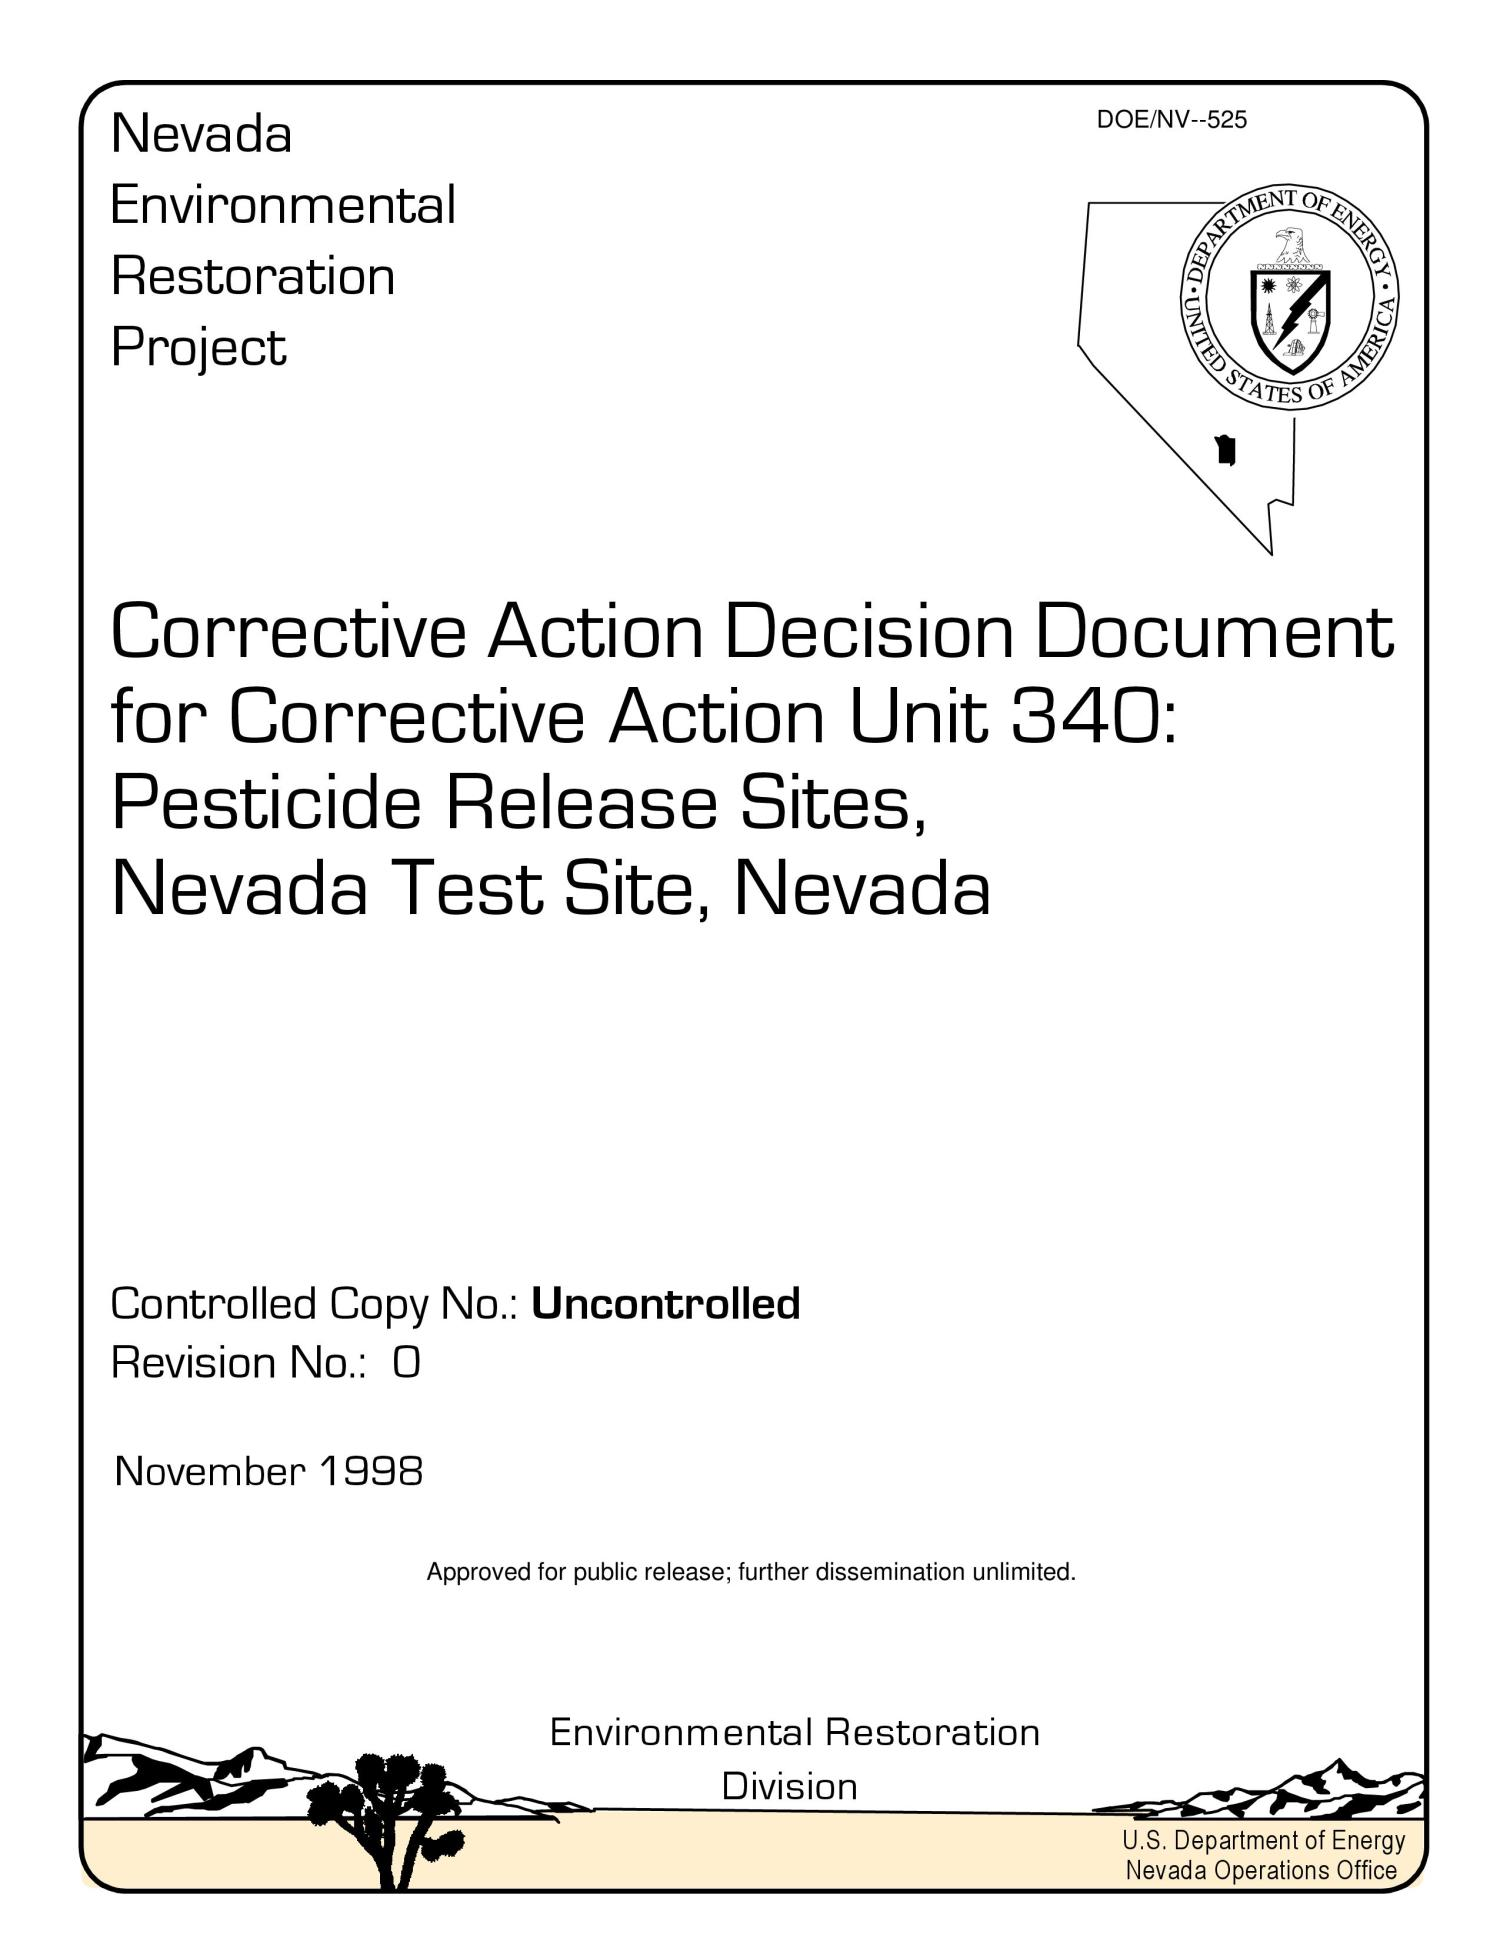 Corrective Action Decision Document for Corrective Action Unit 340: Pesticide Release sites, Nevada Test Site, Nevada                                                                                                      [Sequence #]: 1 of 103